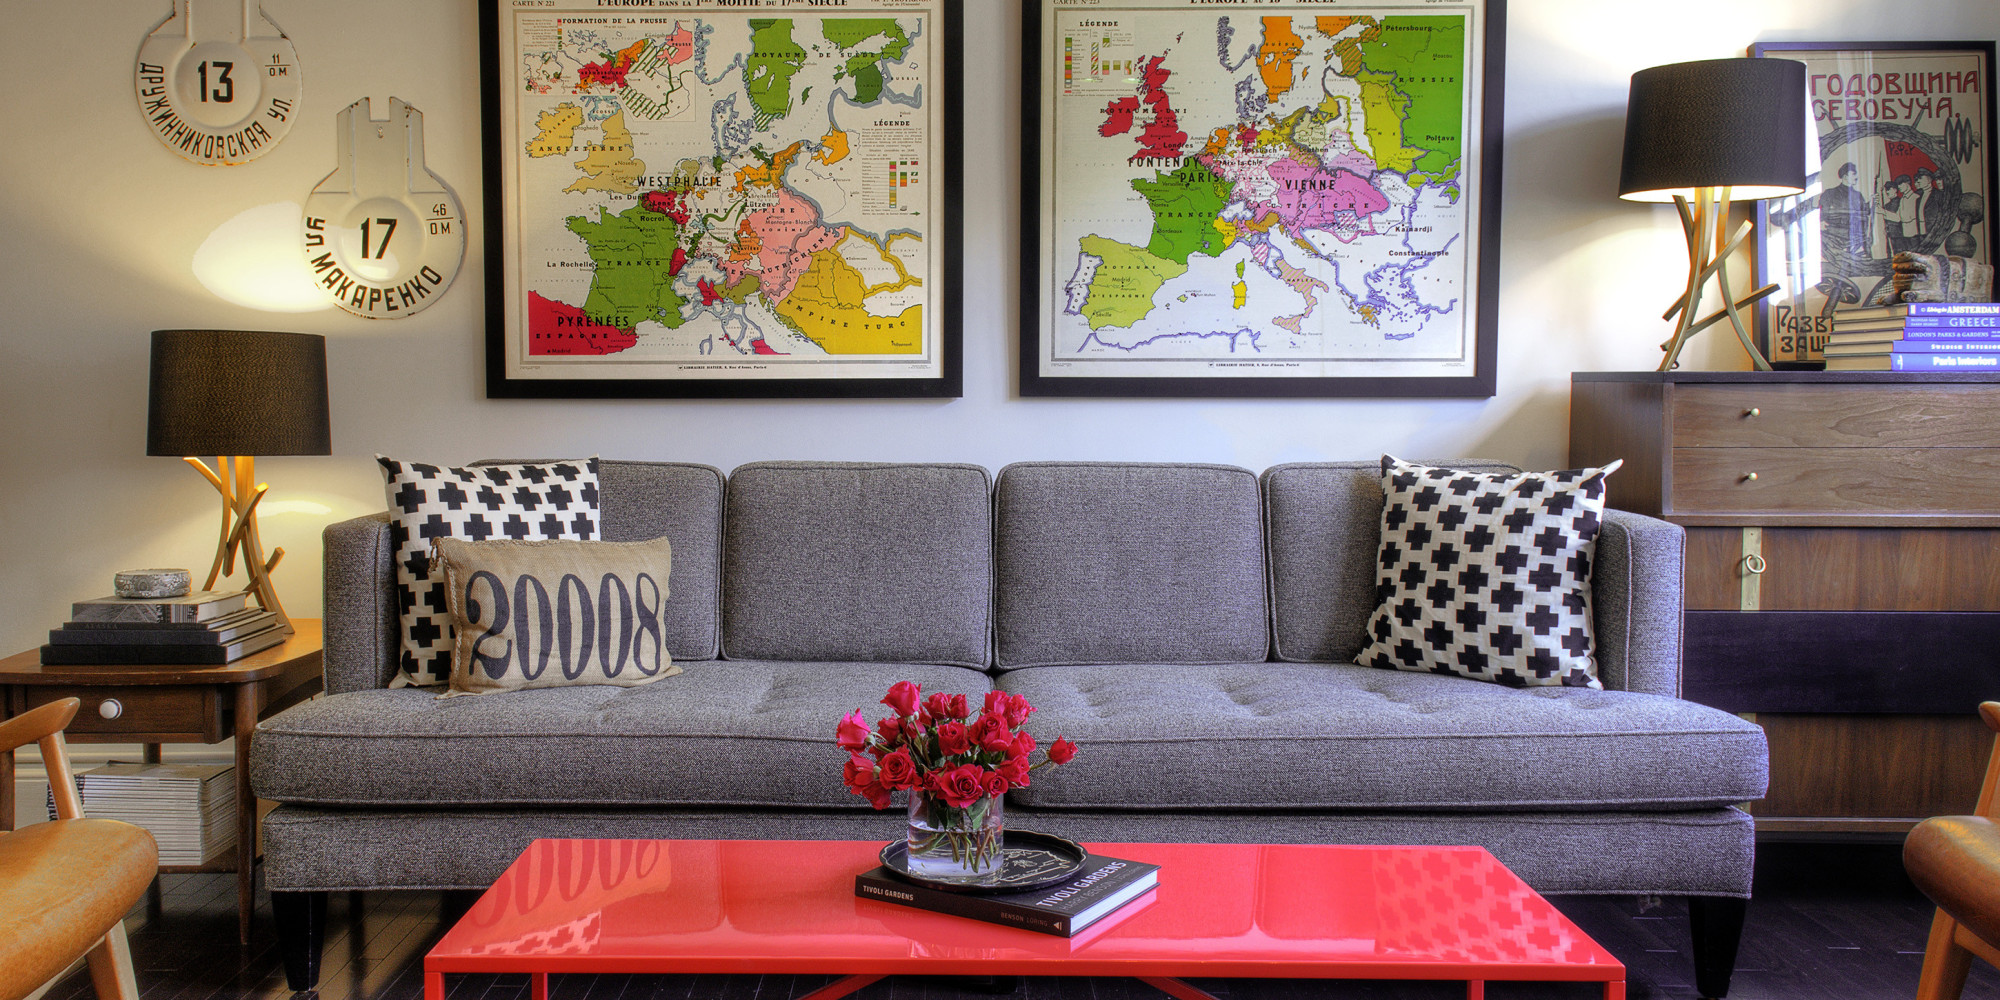 cheap living room decorations.  50 Ways To Update Your Living Room For Or Less PHOTOS HuffPost